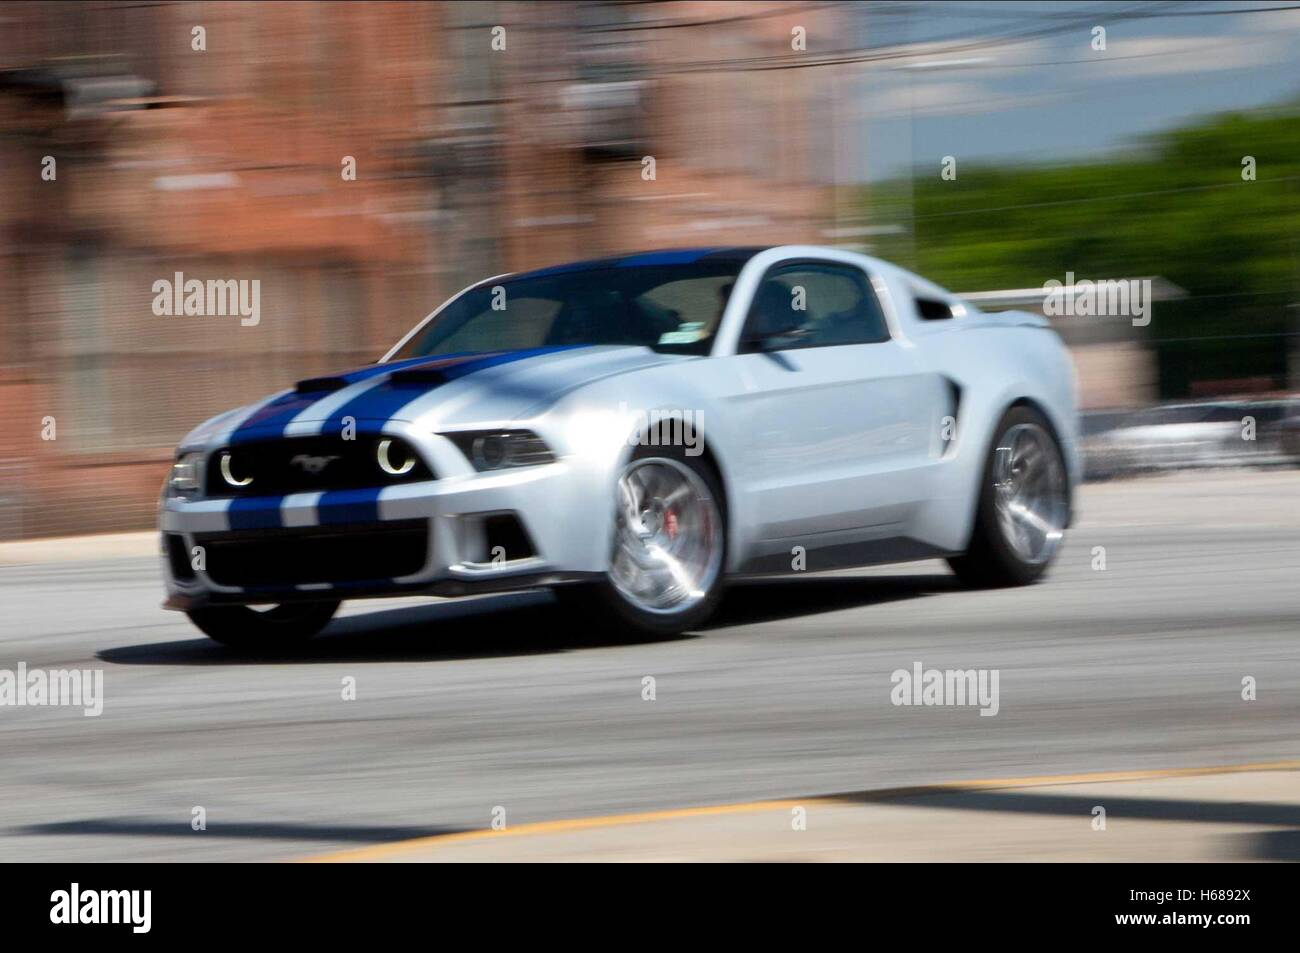 CAR RACE SCENE NEED FOR SPEED (2014 Stock Photo: 124343266 - Alamy